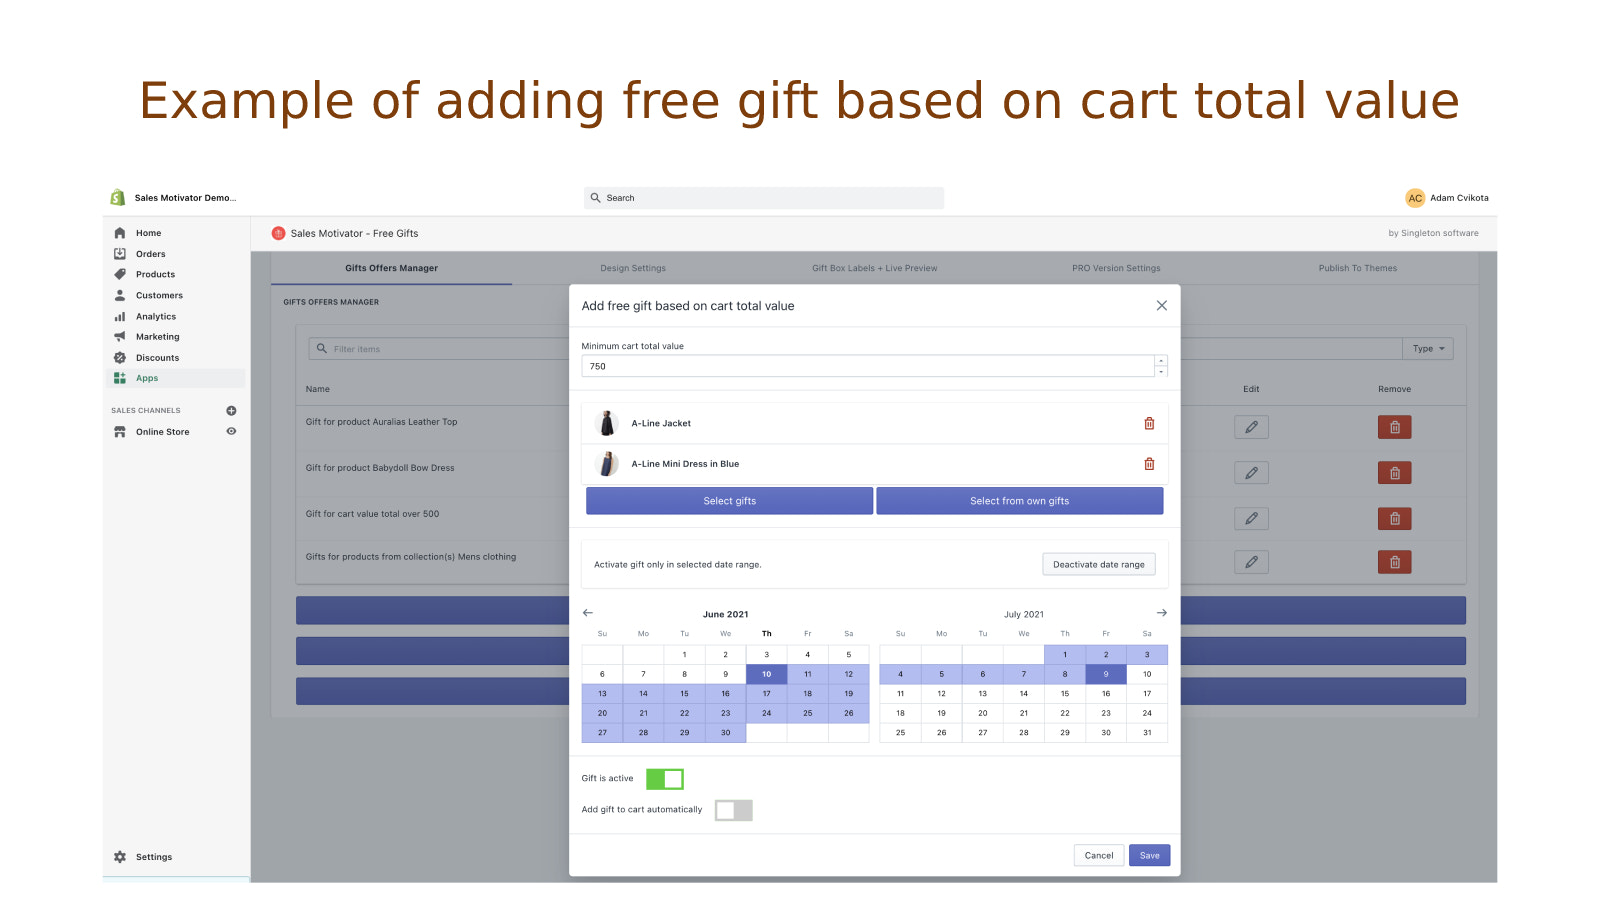 Example of adding free gift based on cart total value